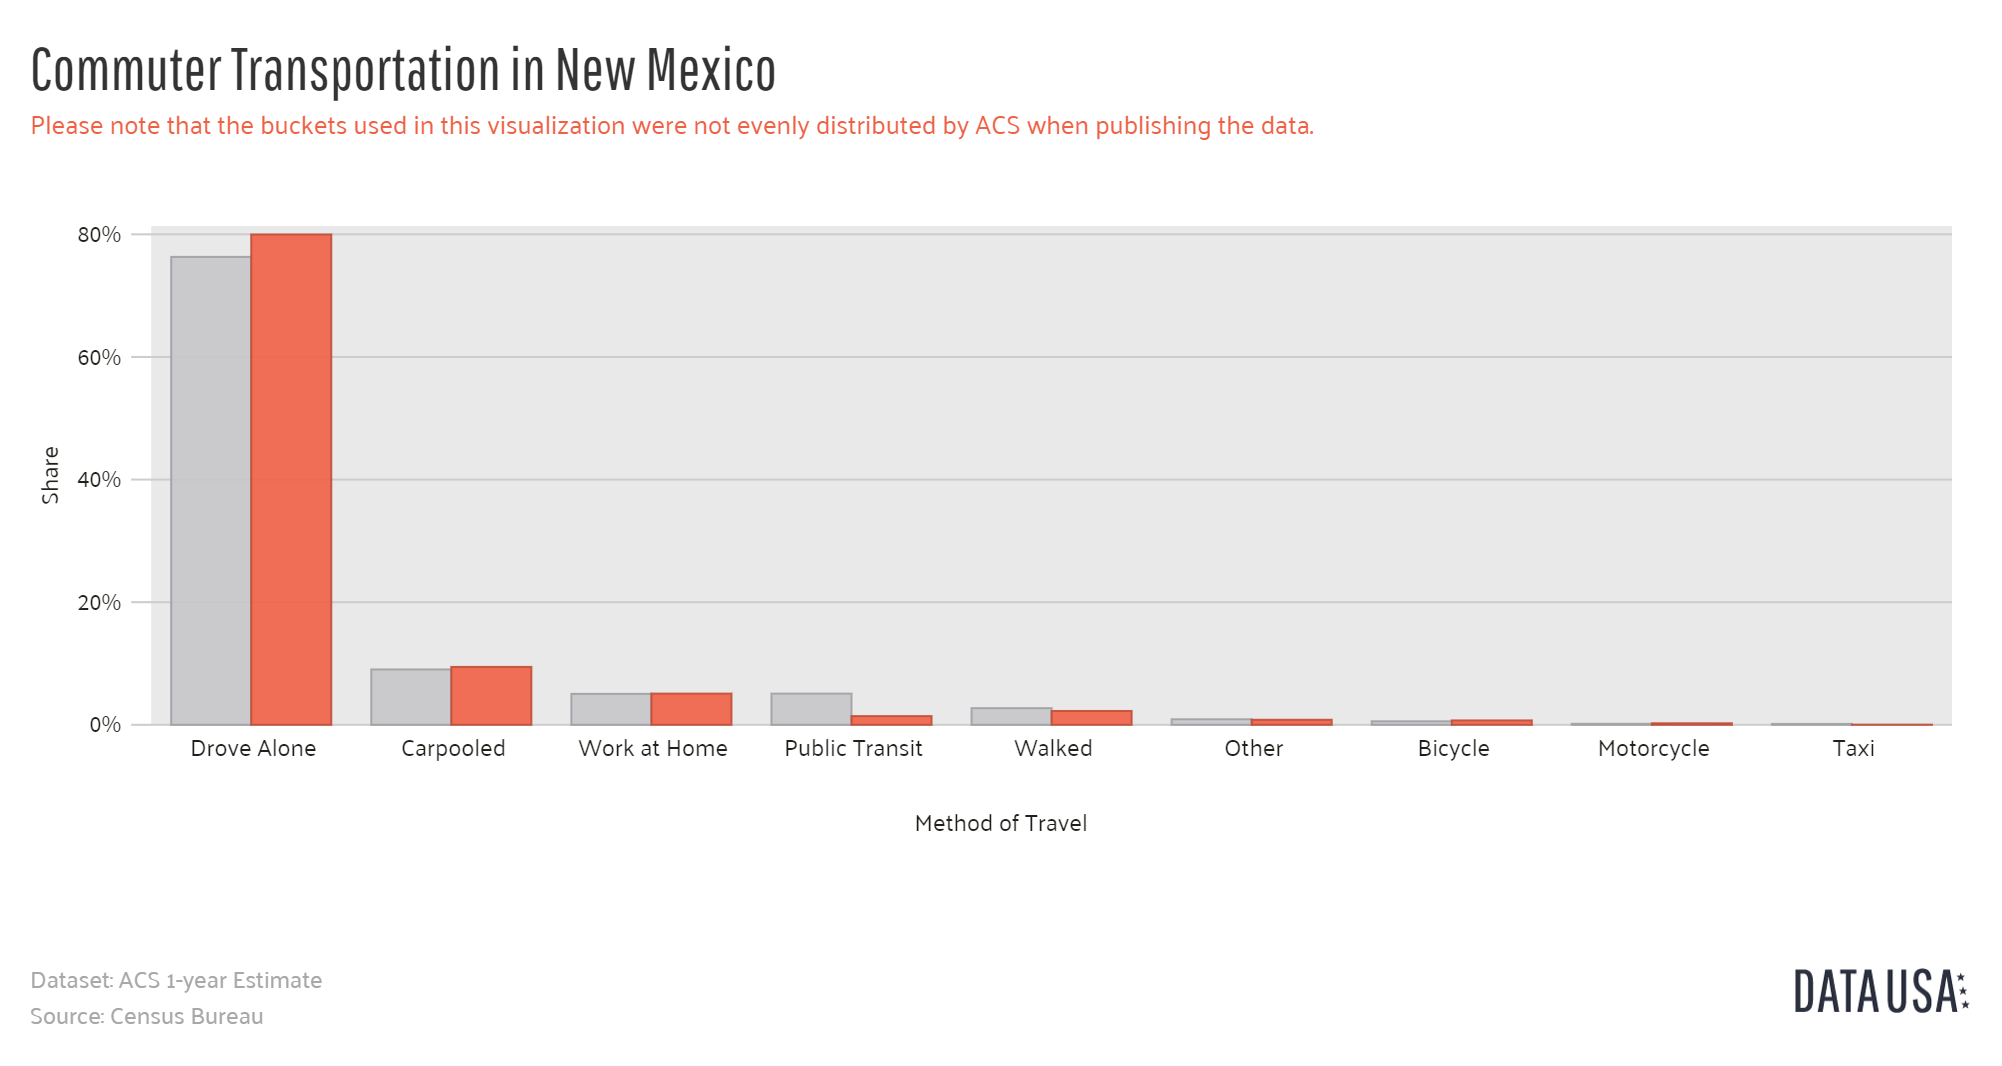 Data USA - Bar Chart of Commuter Transportation in New Mexico